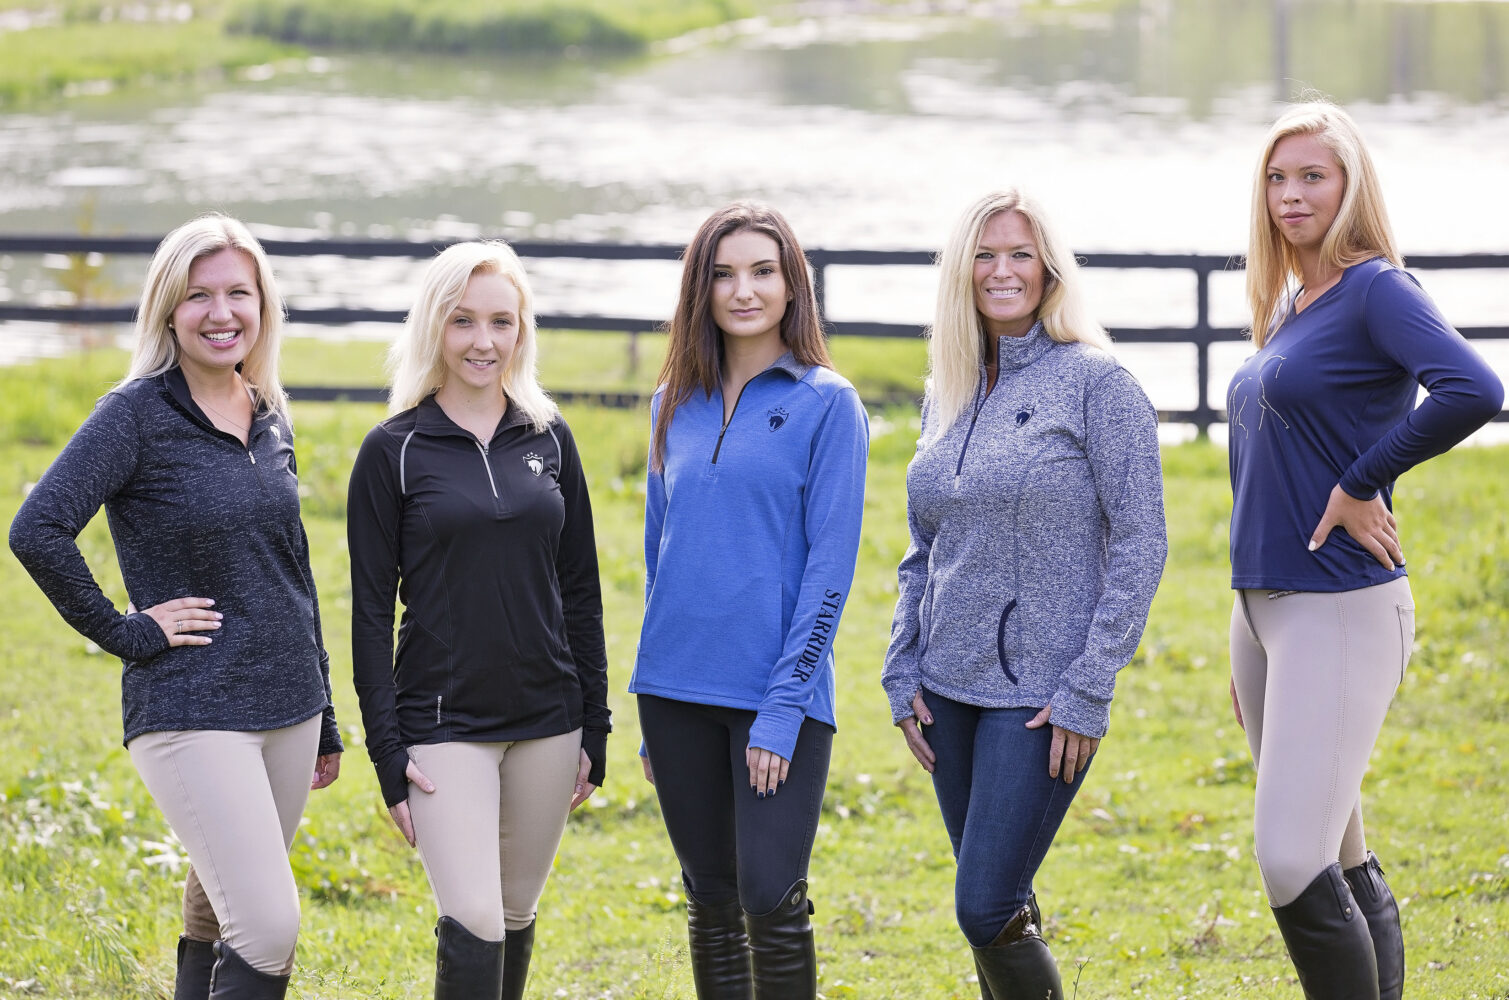 Fashionable Equestrian Apparel